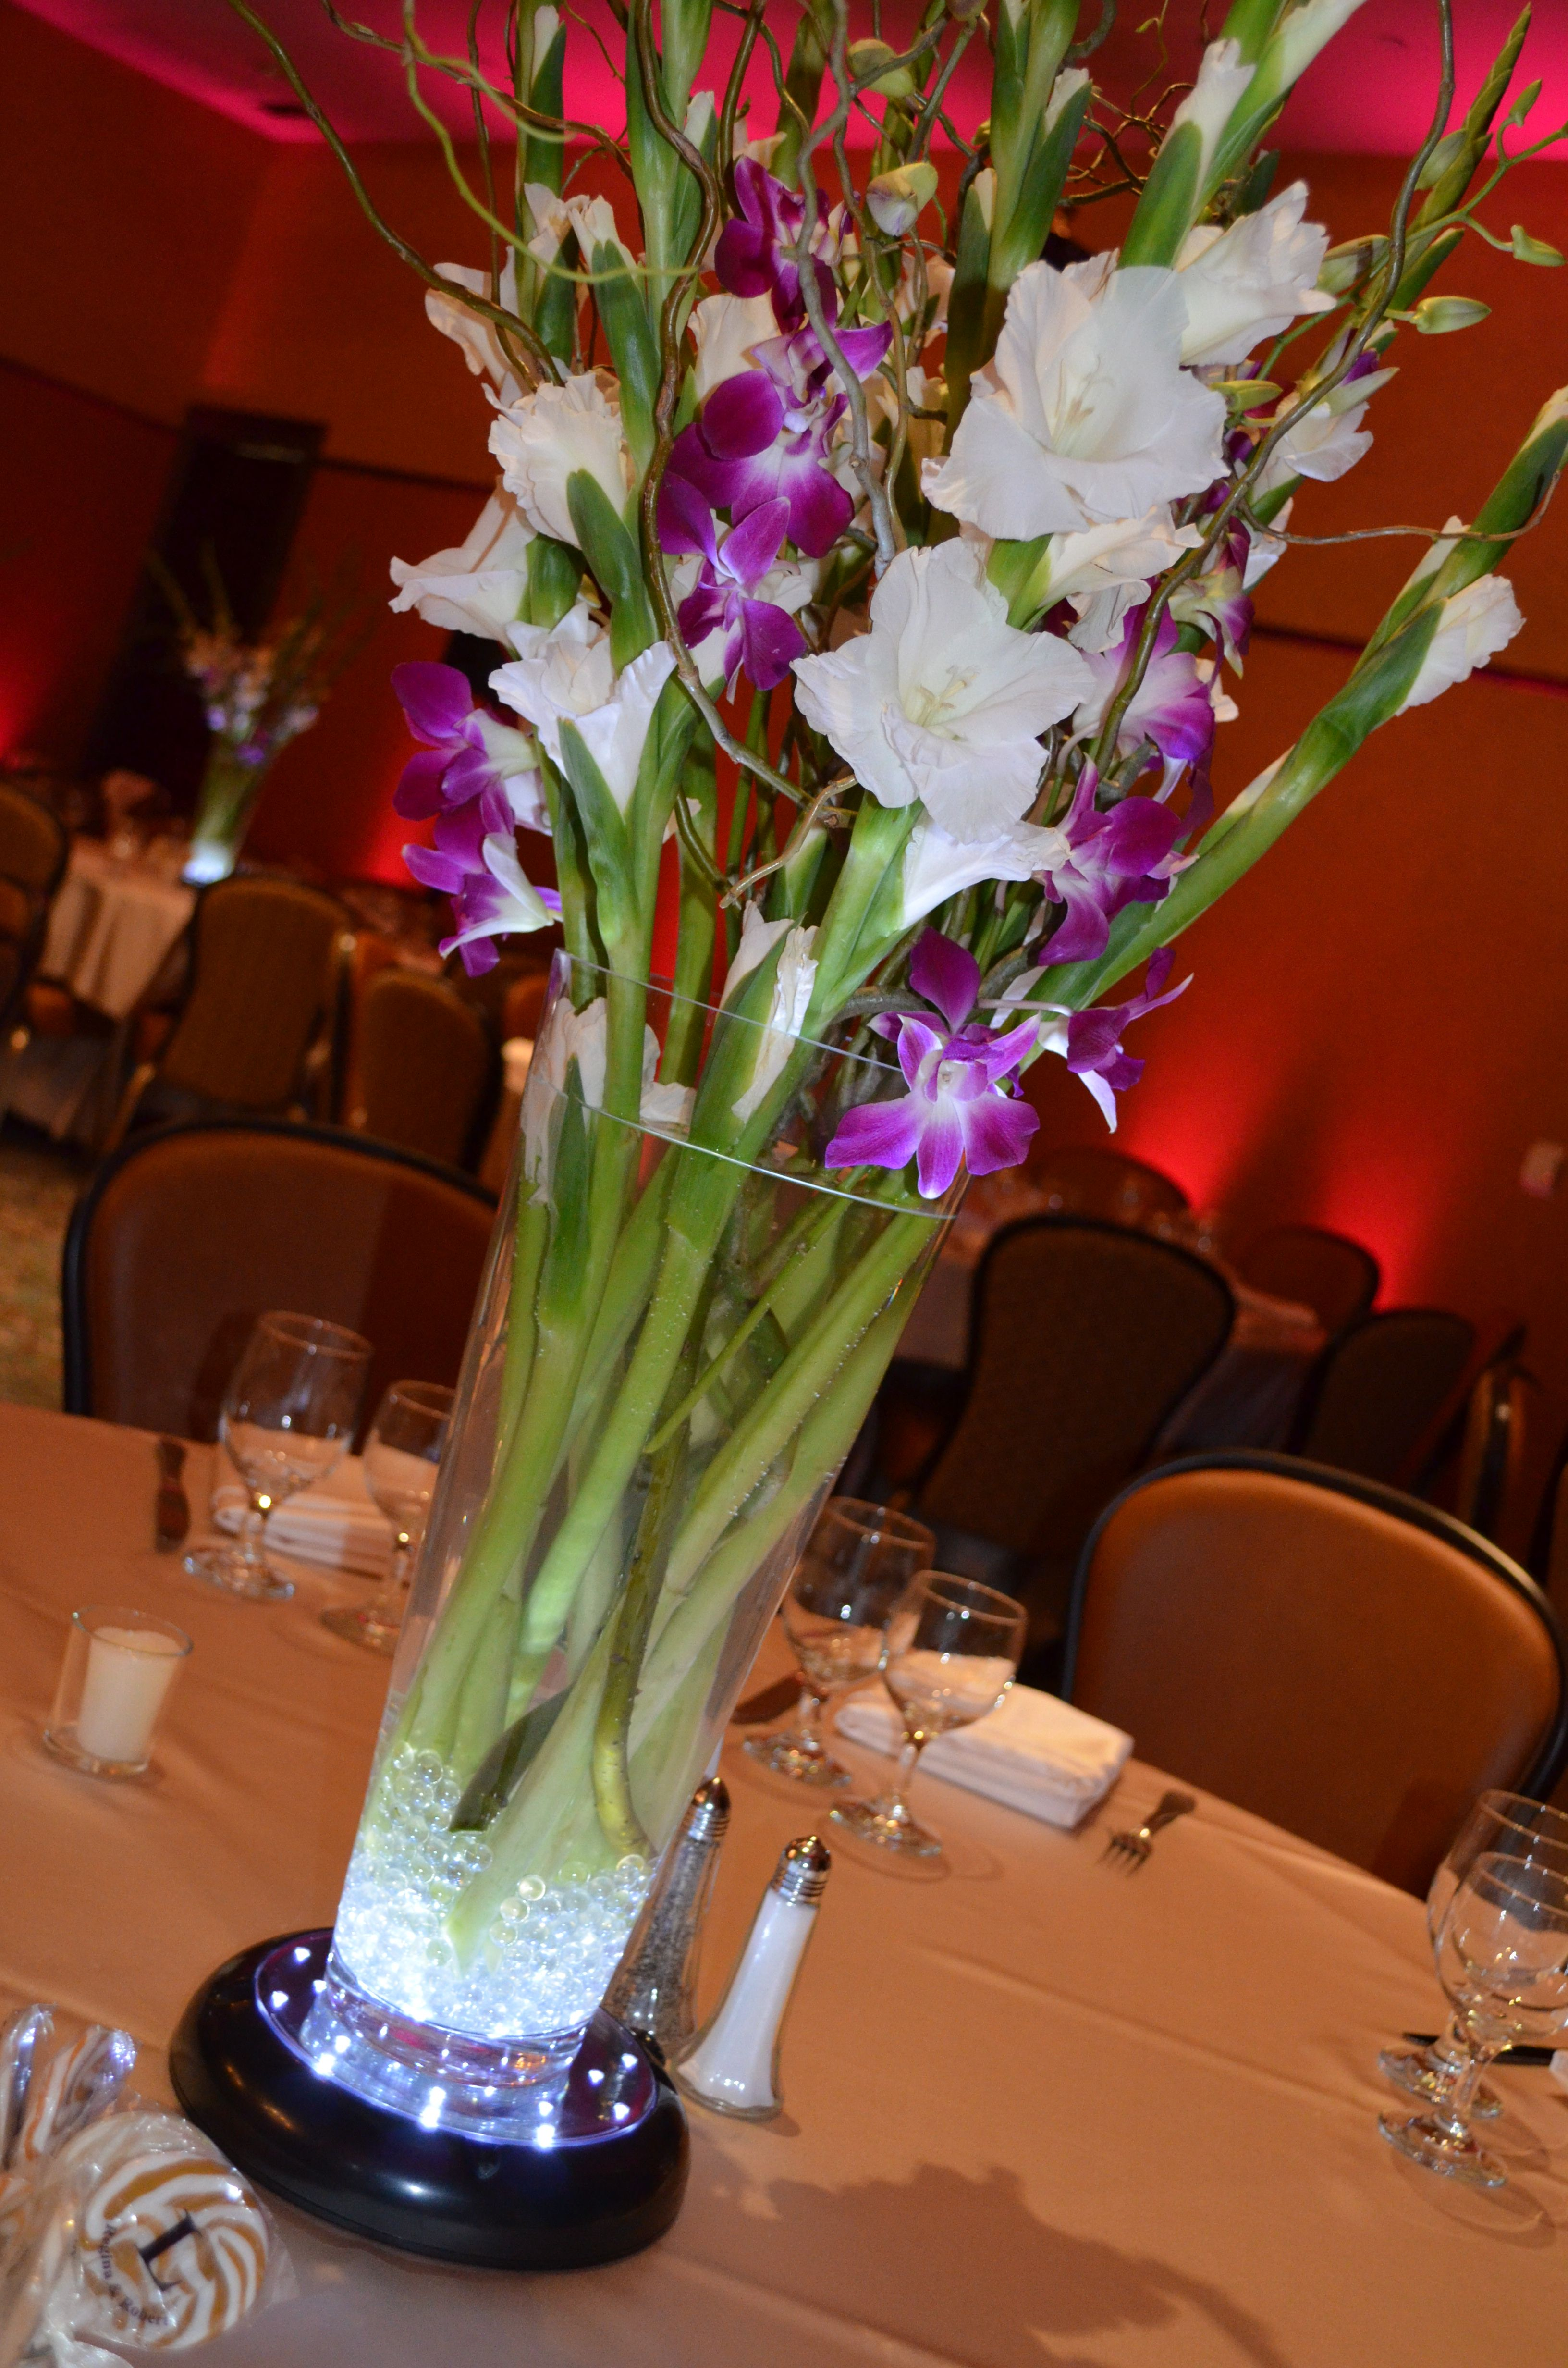 White gladiolus curly willow purple dendrobium orchids